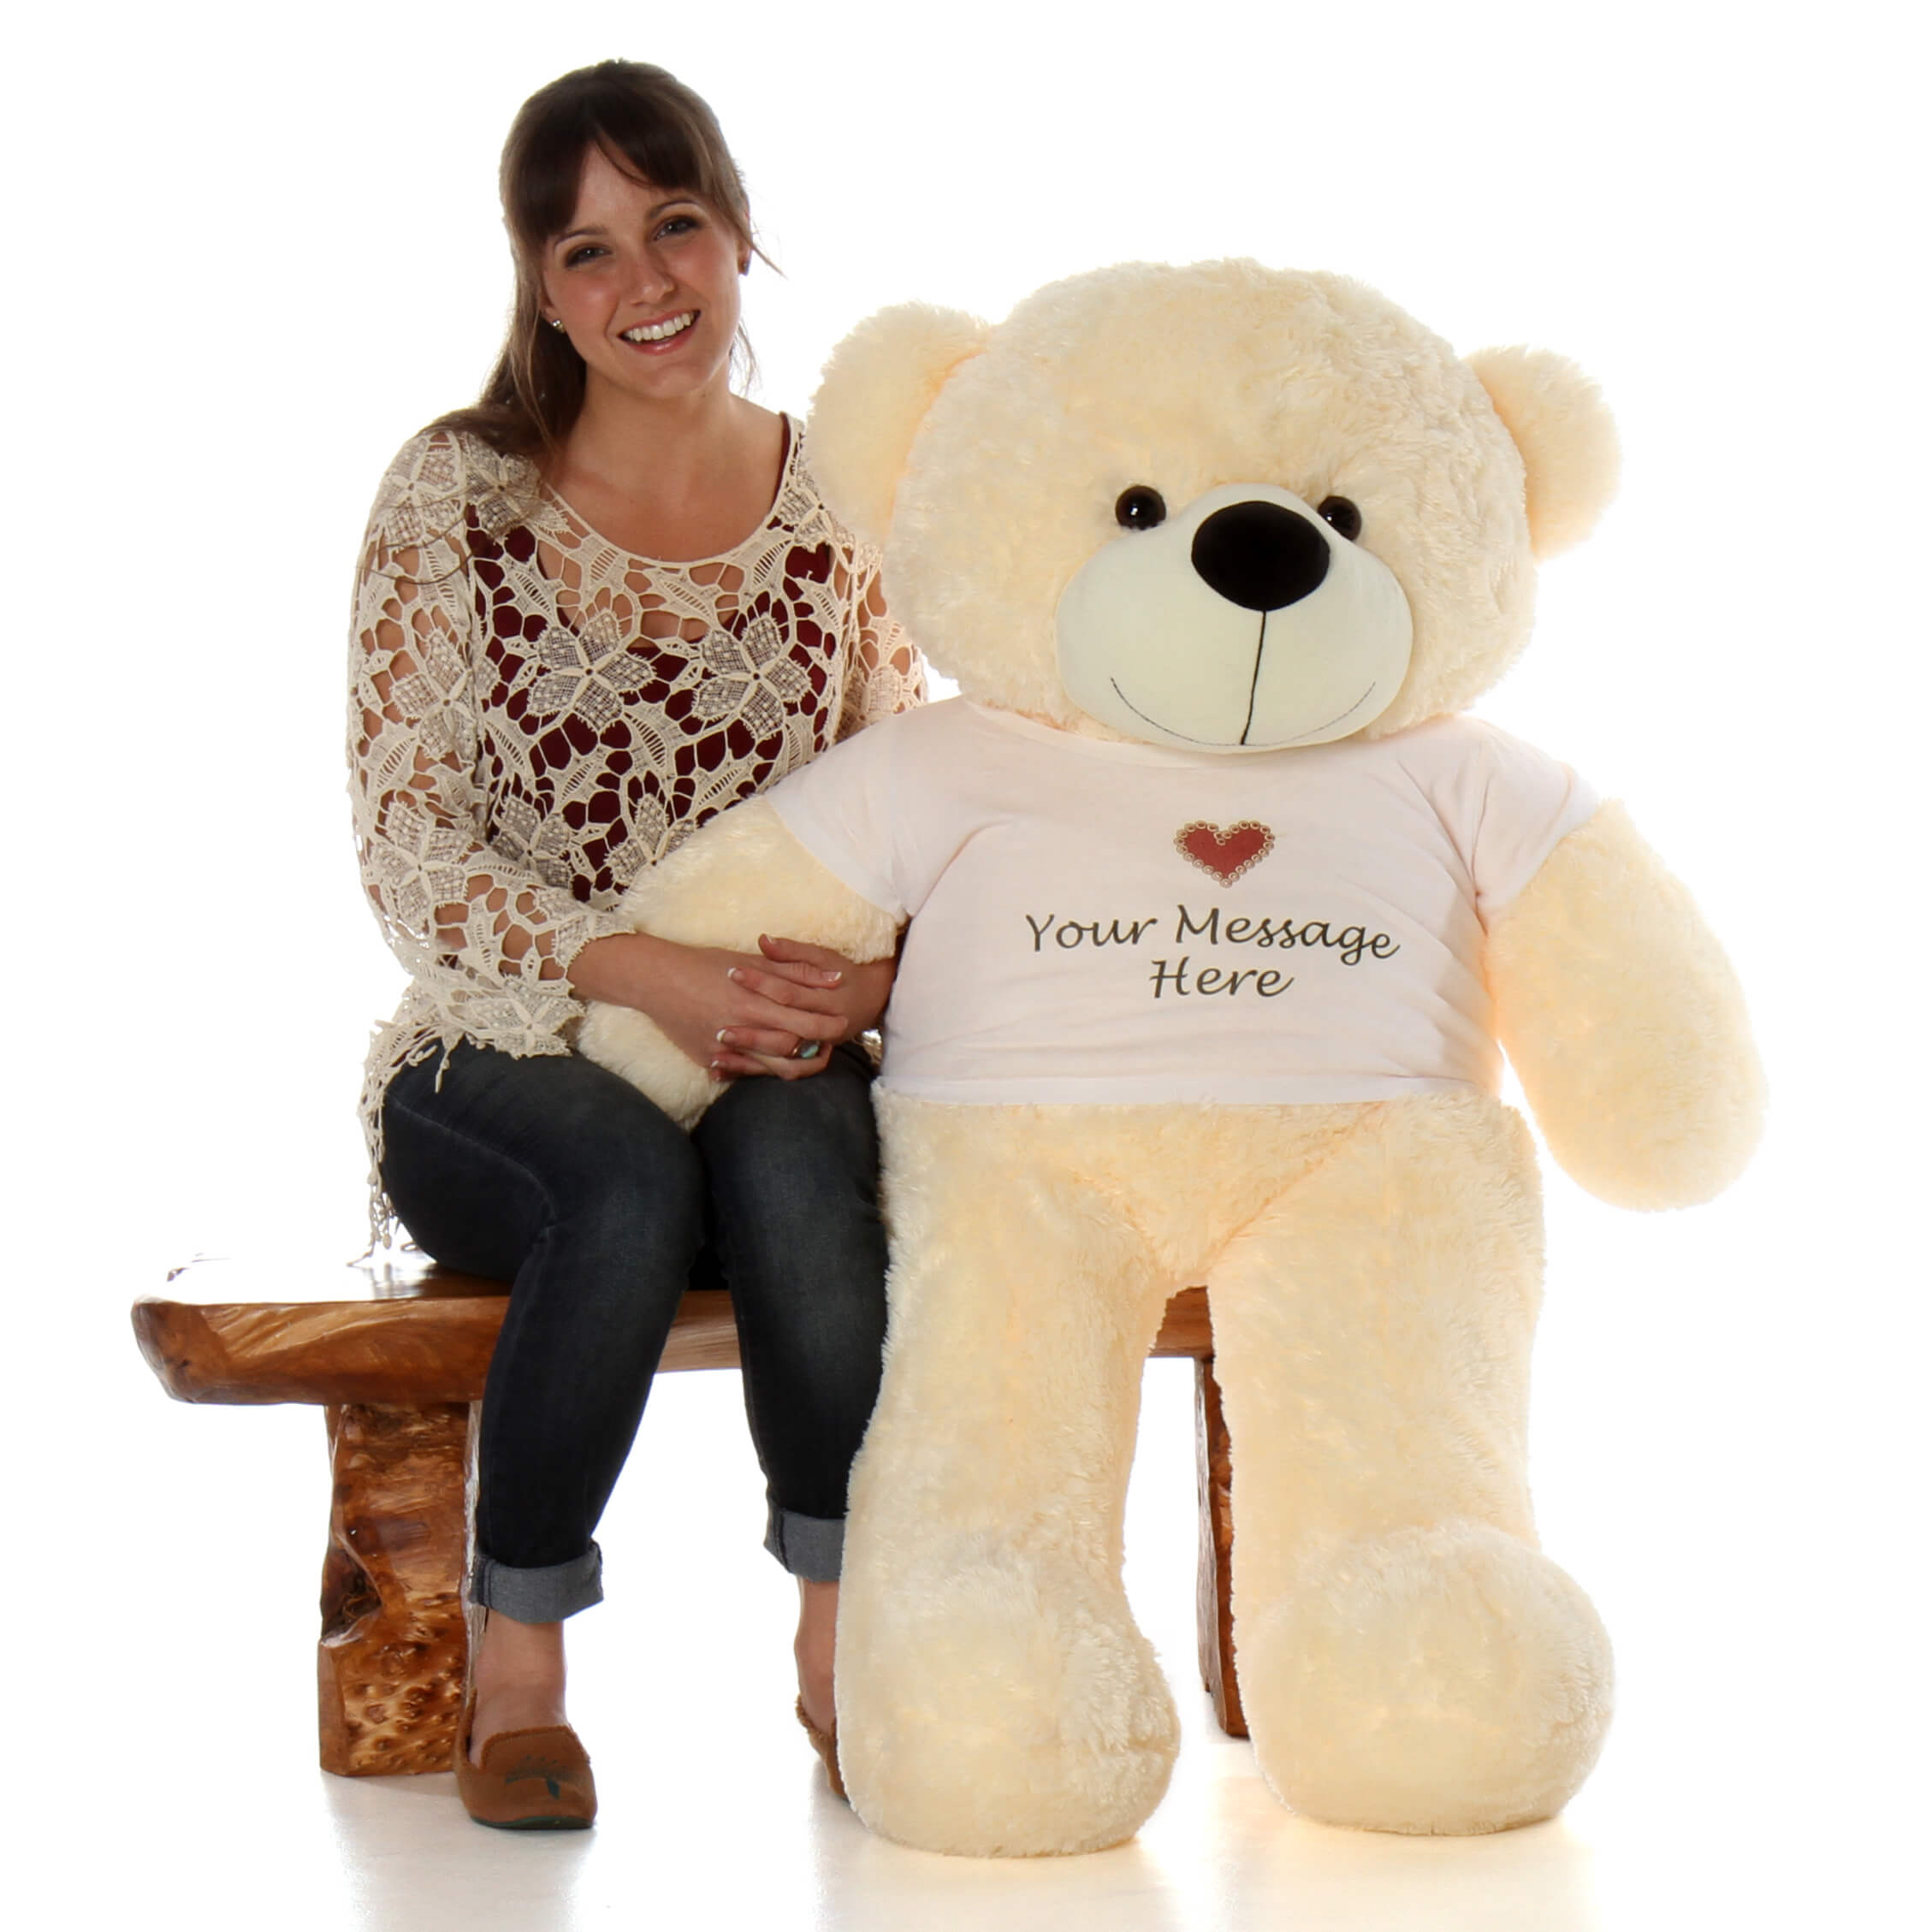 4ft-amazing-cute-huggable-life-size-cream-teddy-bear-1.jpg